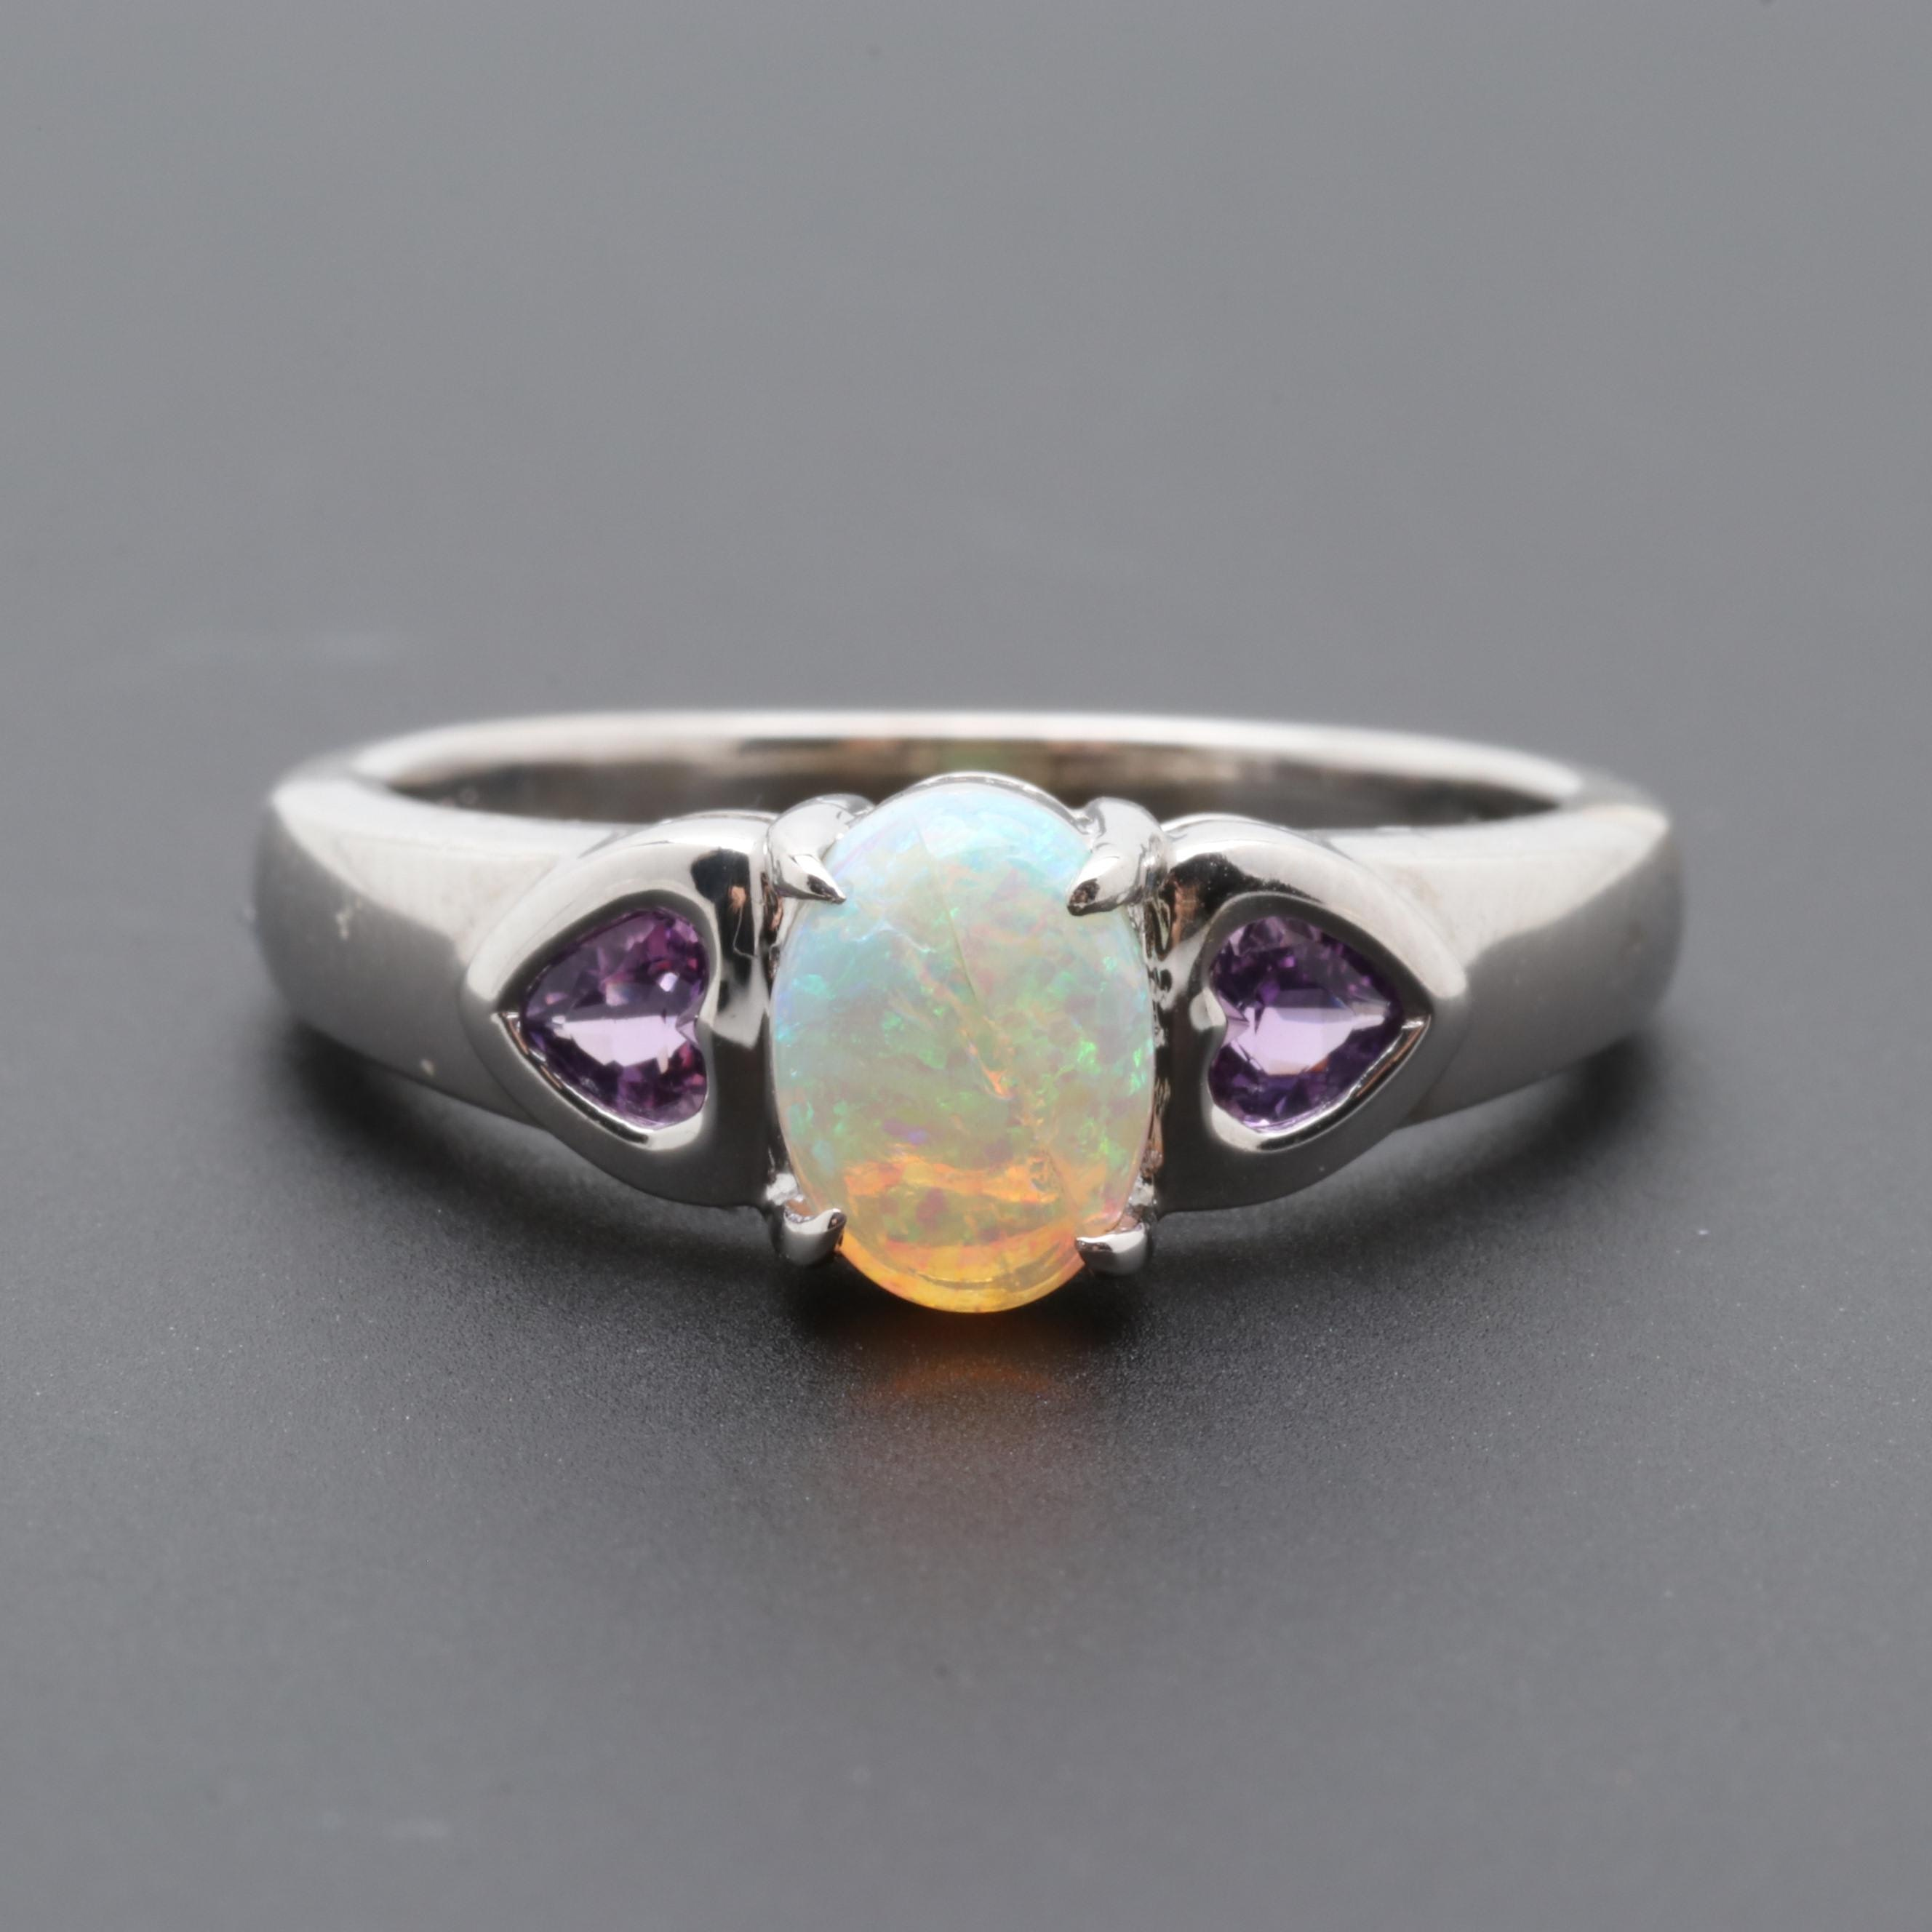 10K White Gold Opal and Amethyst Ring